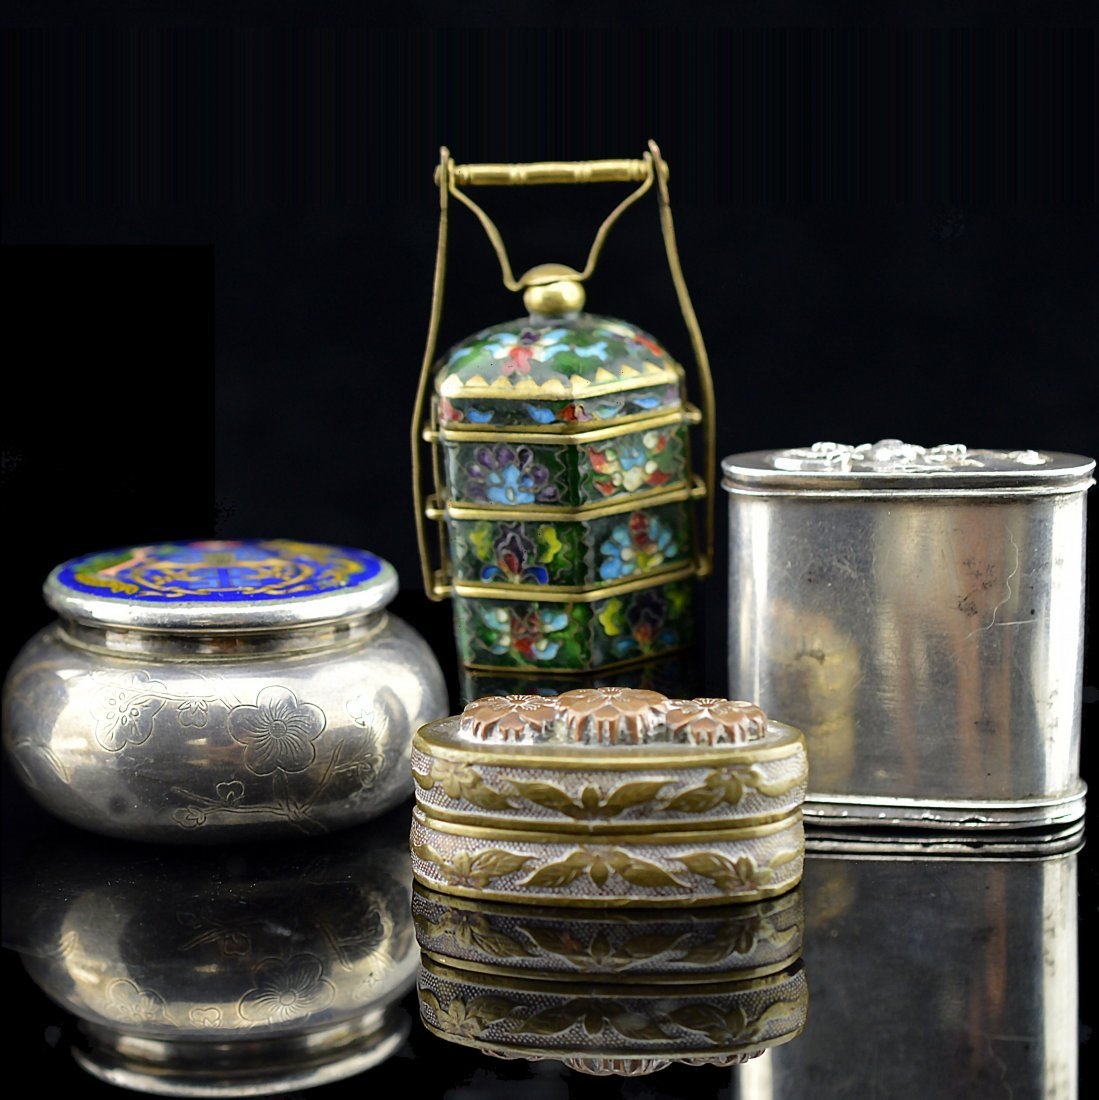 4 Item Set of Cloisonne Enamel, Silver, and Copper